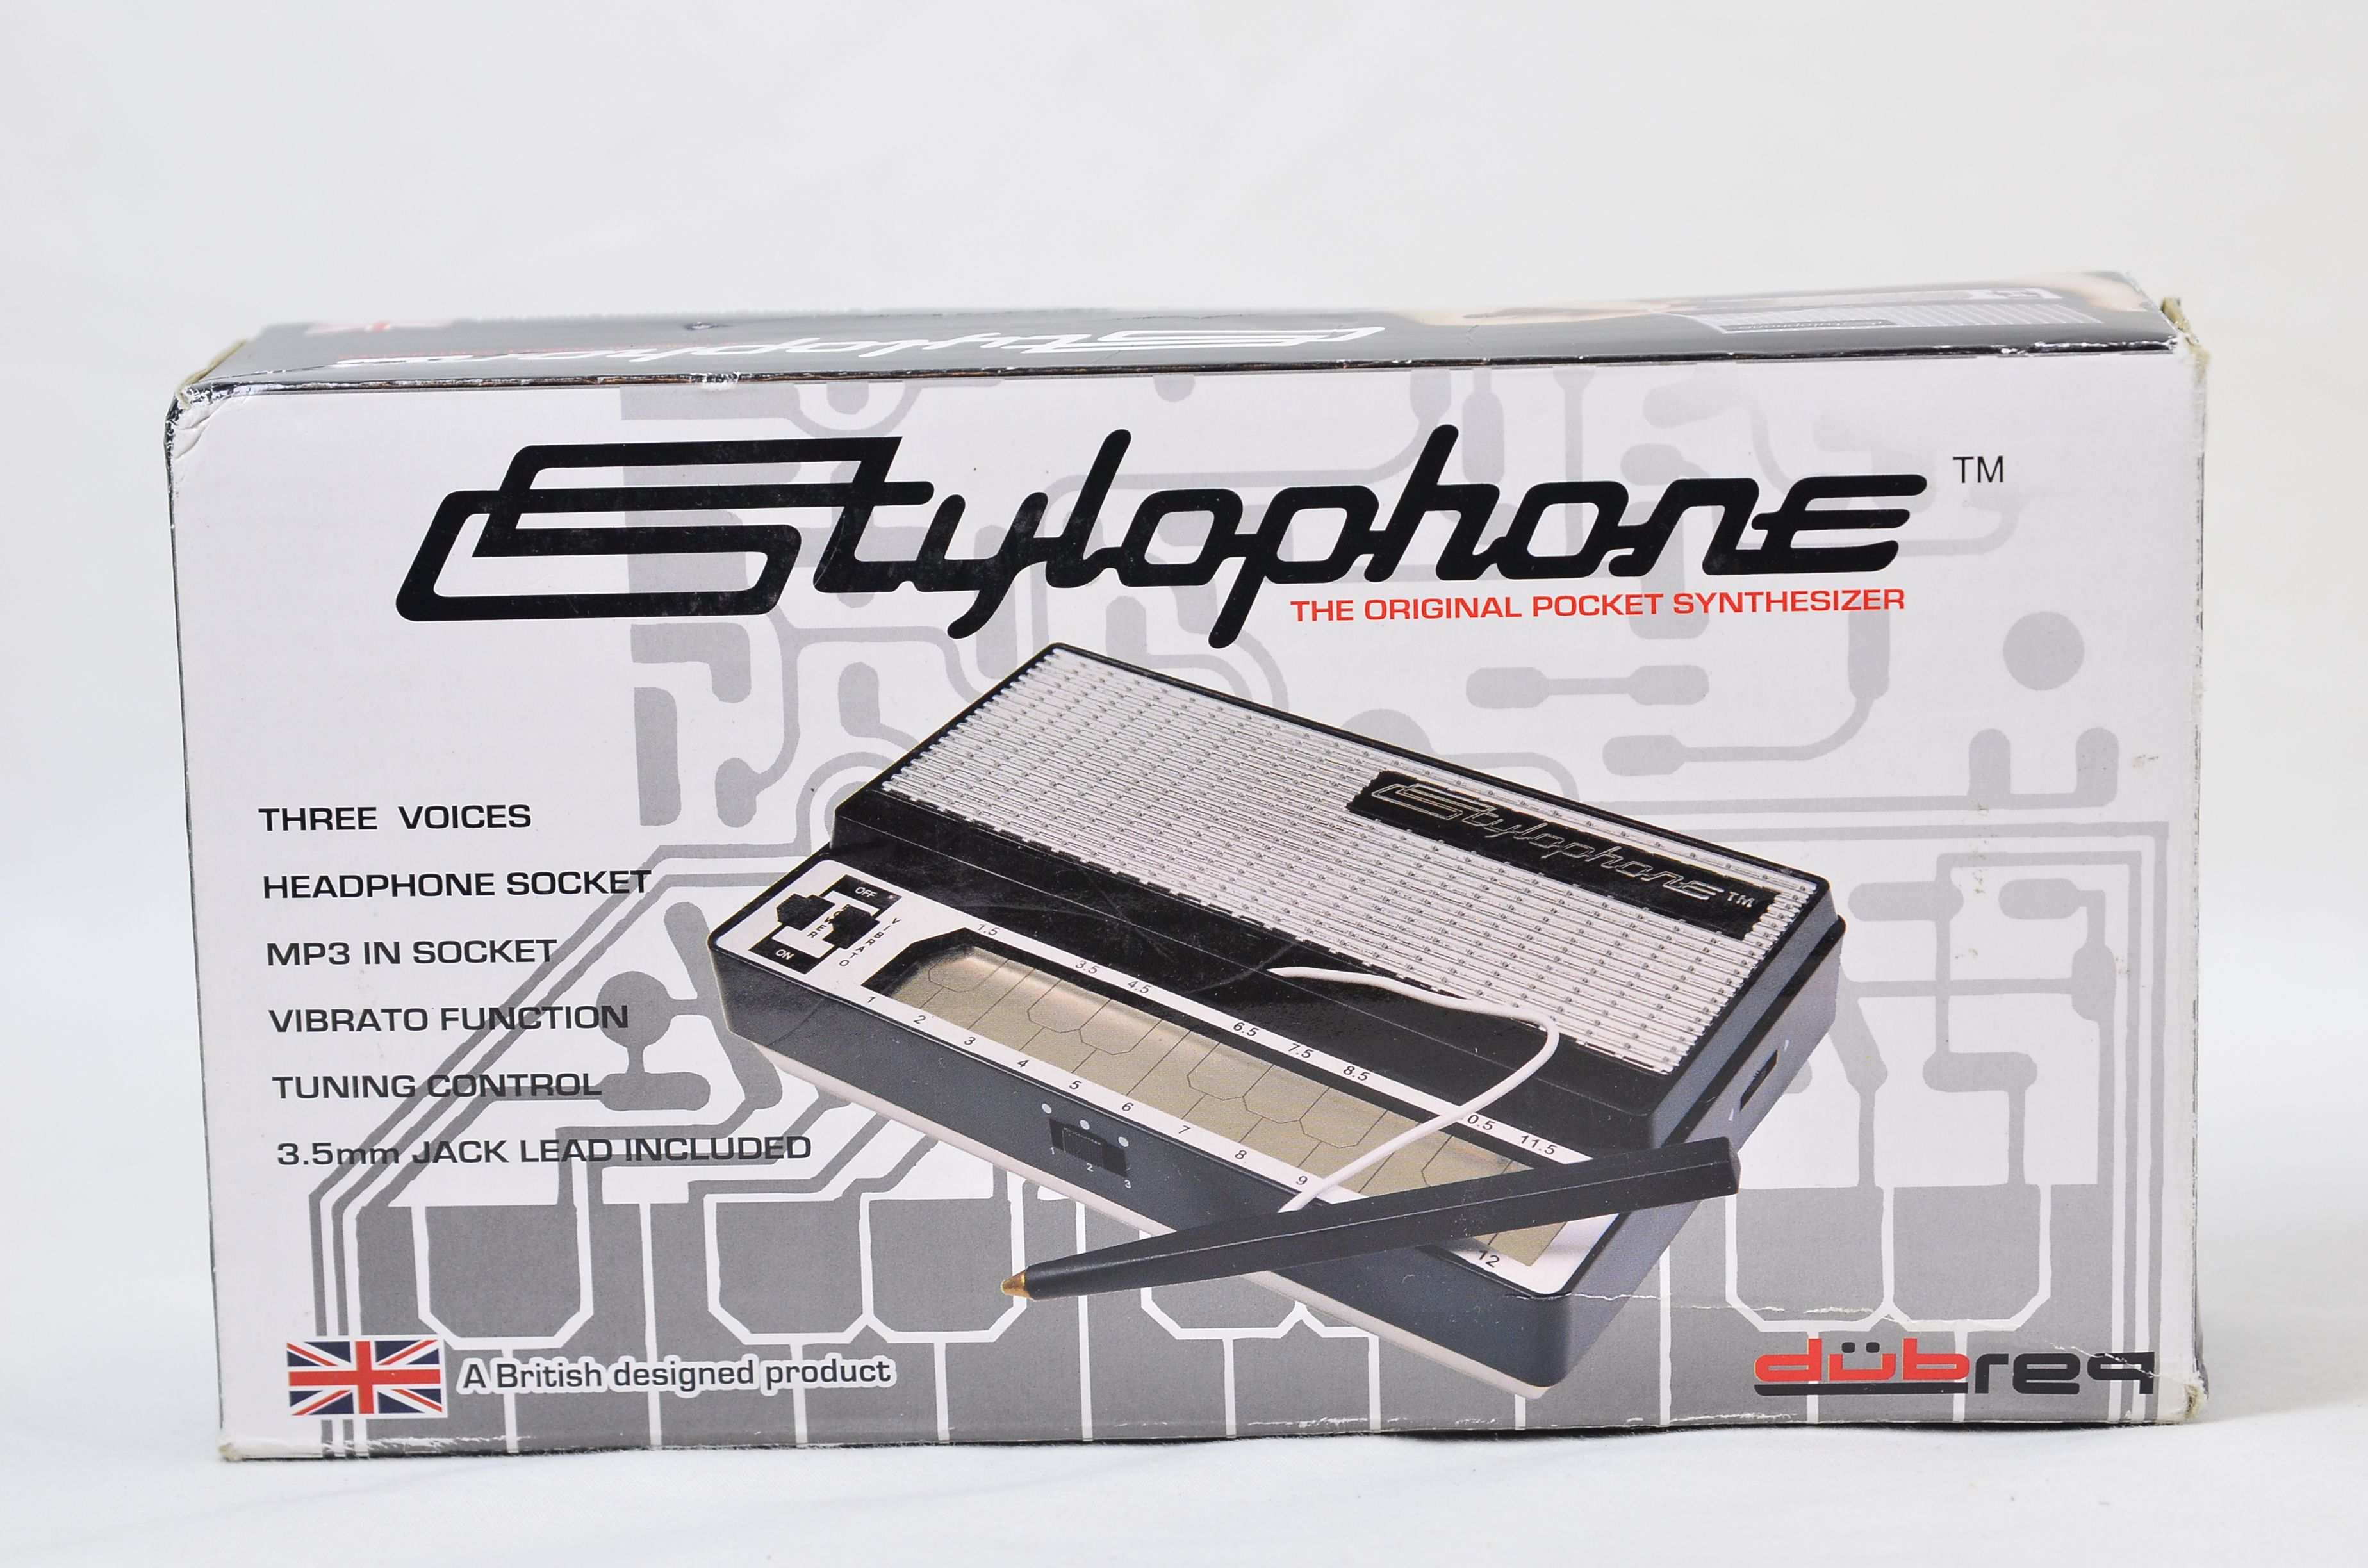 Dubreq Stylophone - The Original Pocket Synthesizer S-1 Pocket Electronic Organ Thumbnail 2